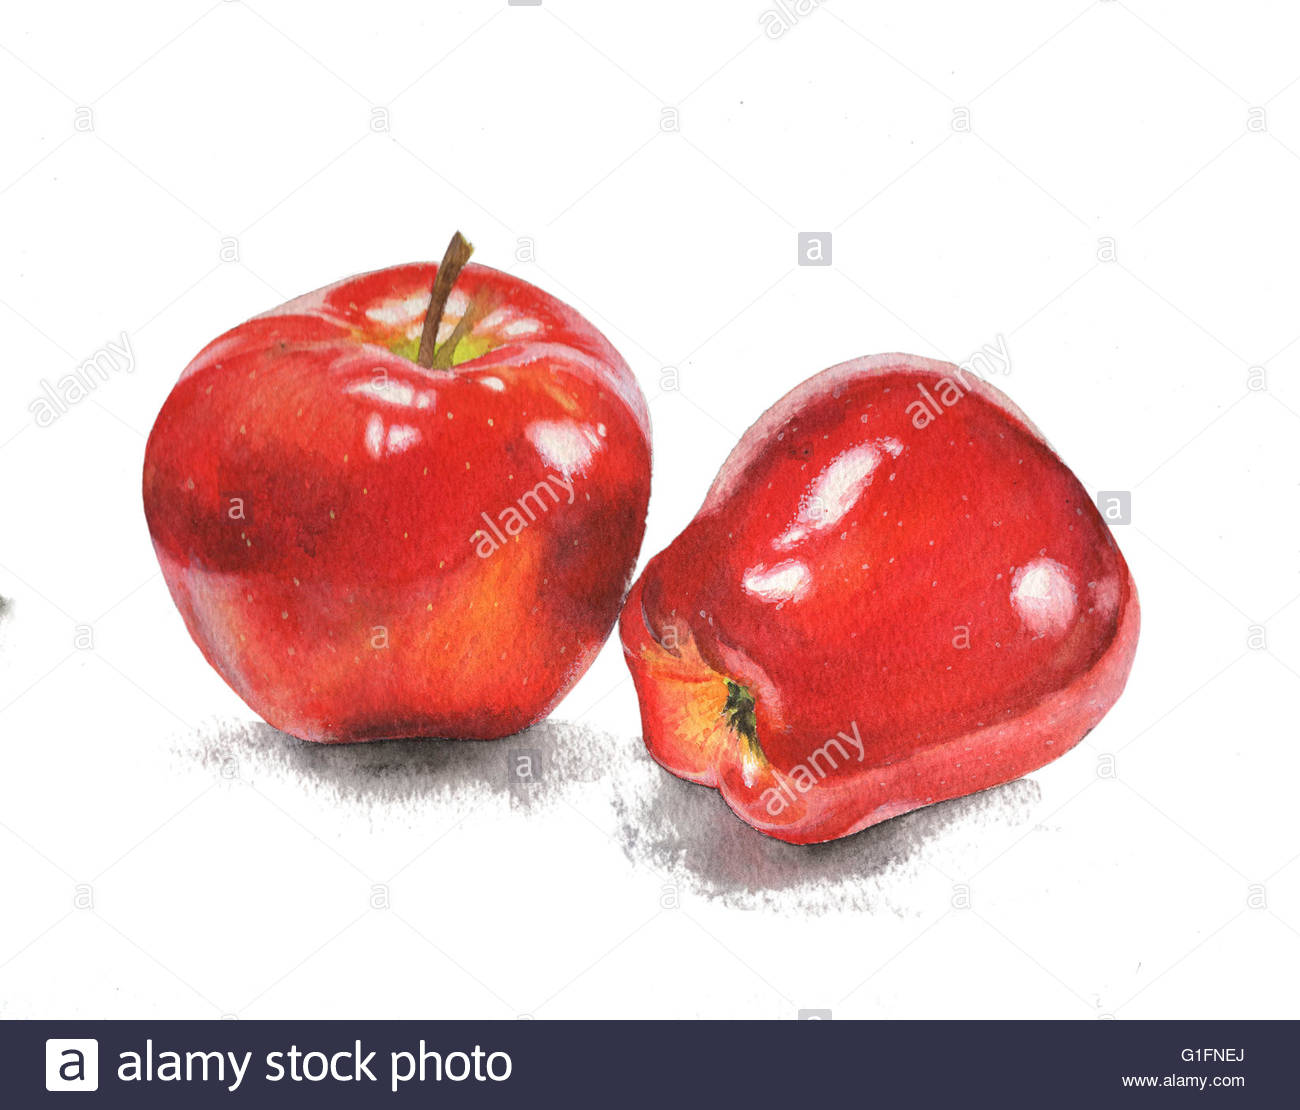 1300x1110 Watercolor Painting Illustration Isolated Apples Object Design